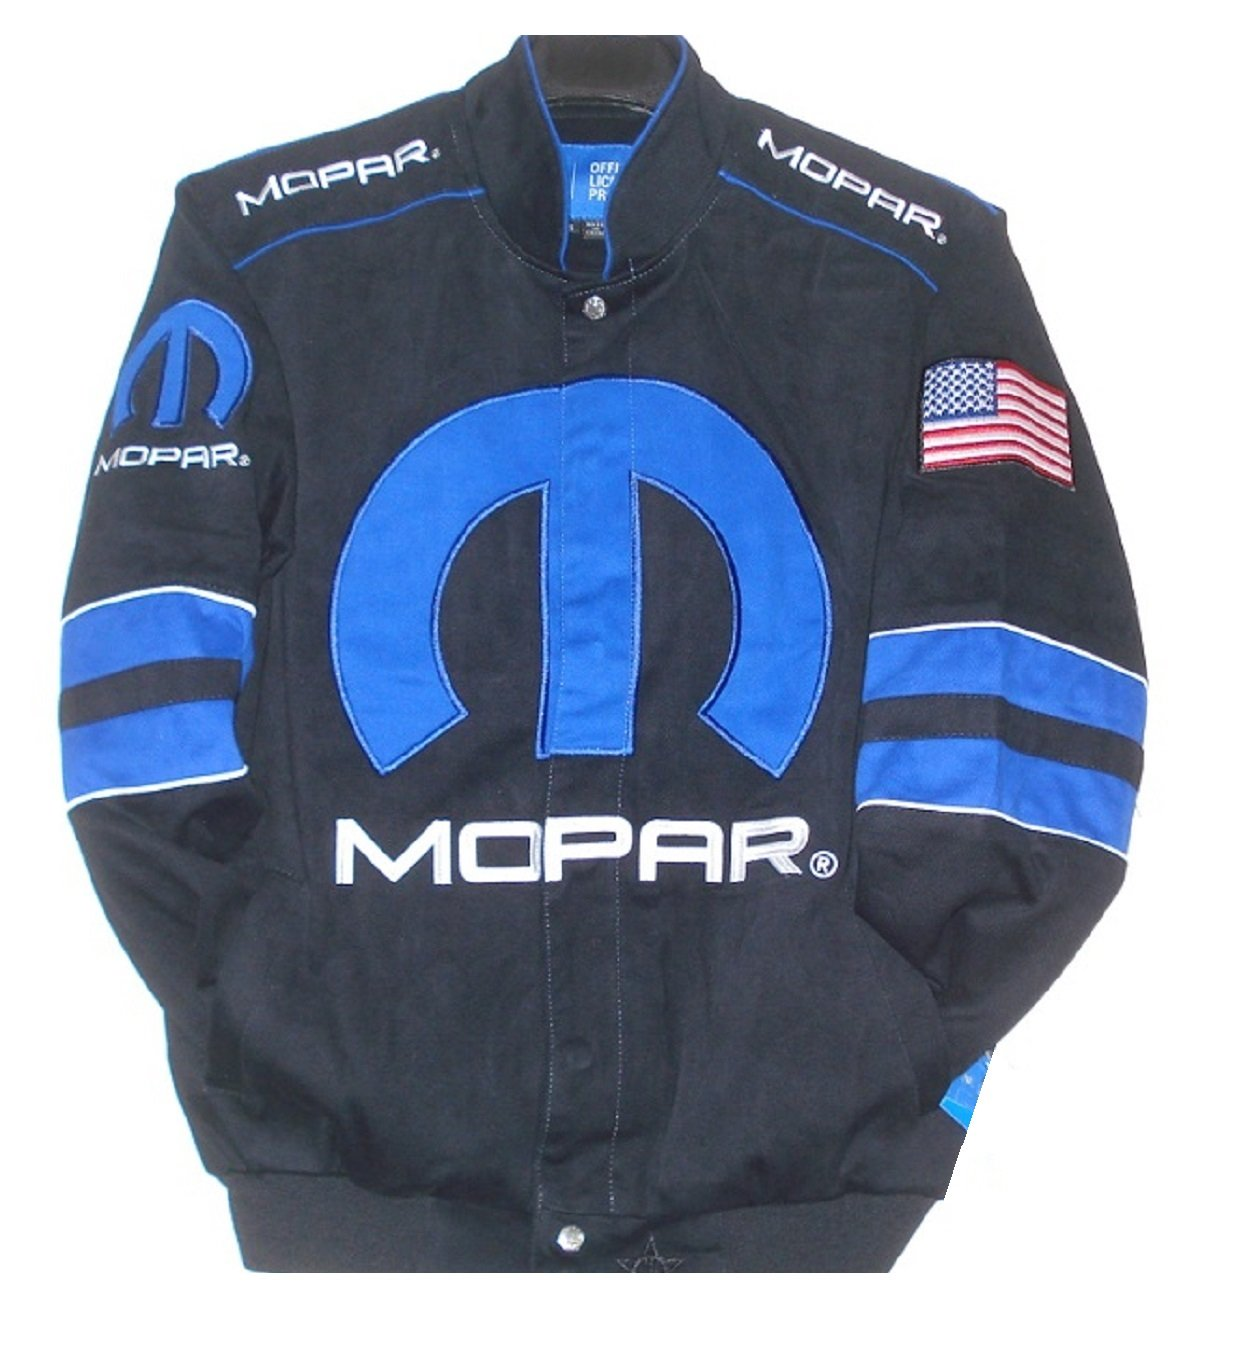 Dodge Mopar Embroidered Cotton Jacket black JH Design Generic S